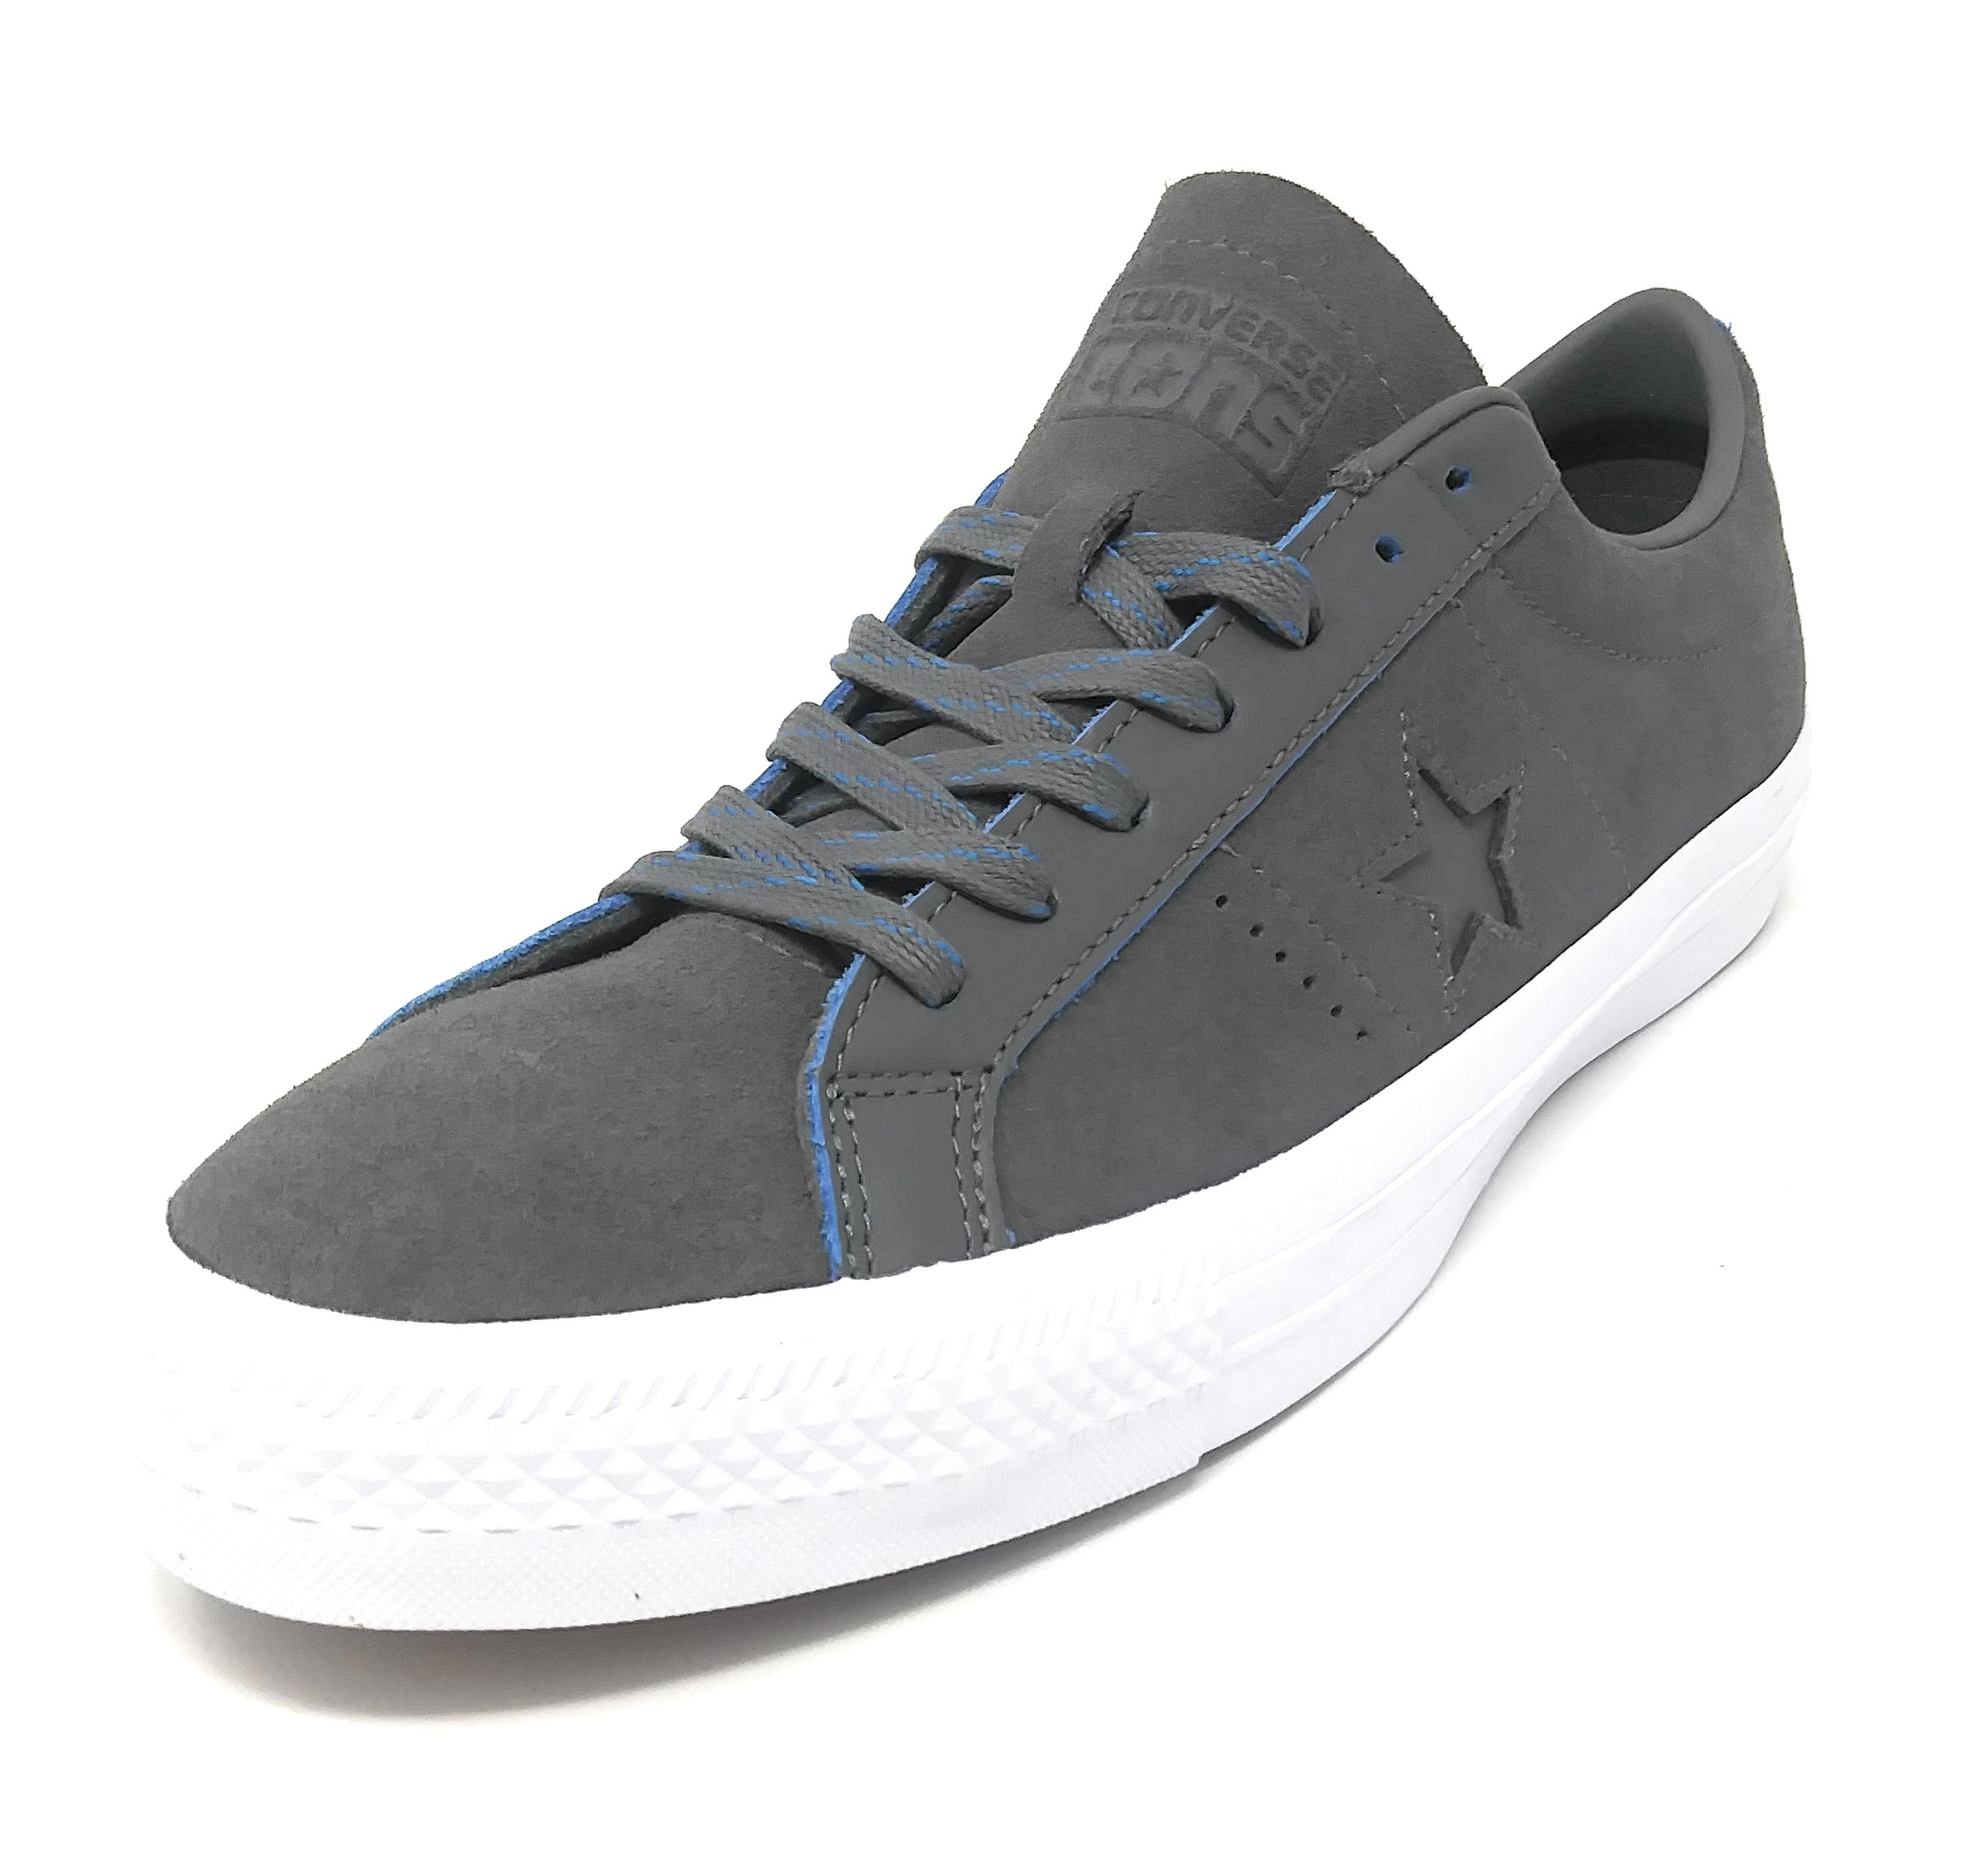 5b7eeea780e6 Galleon - Converse One Star Pro OX Charcoal Grey Soar White (10 Mens 12  Womens)